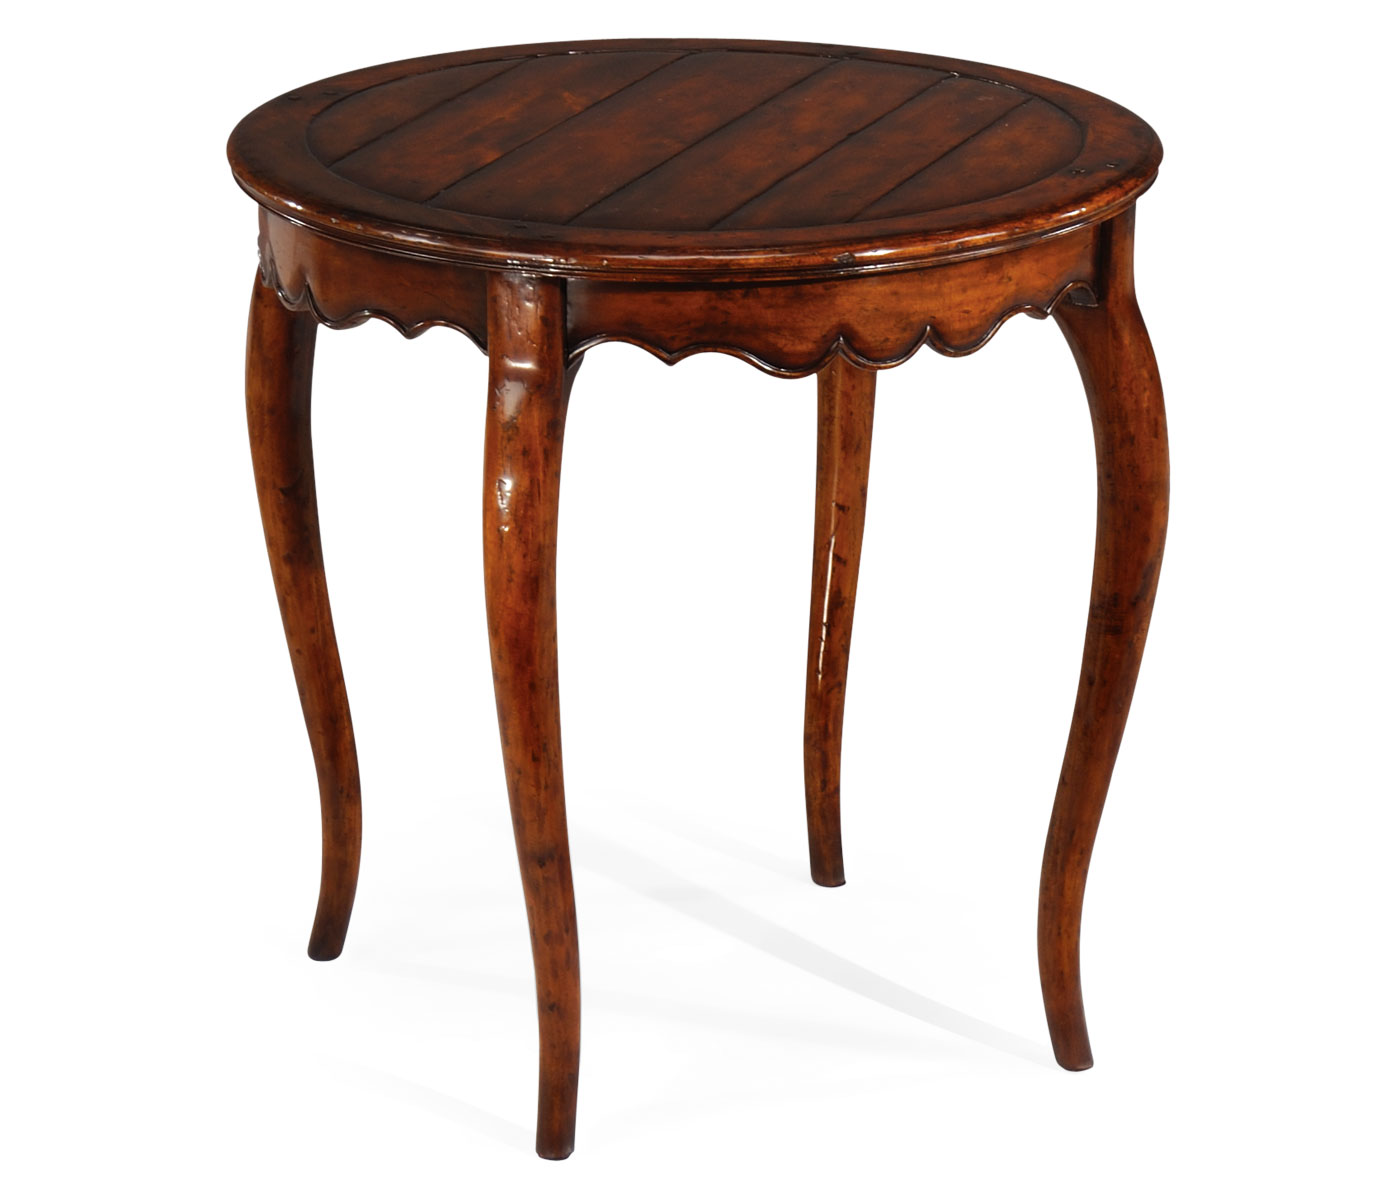 French Country Round Kitchen Table: Round French Walnut Country Side Table